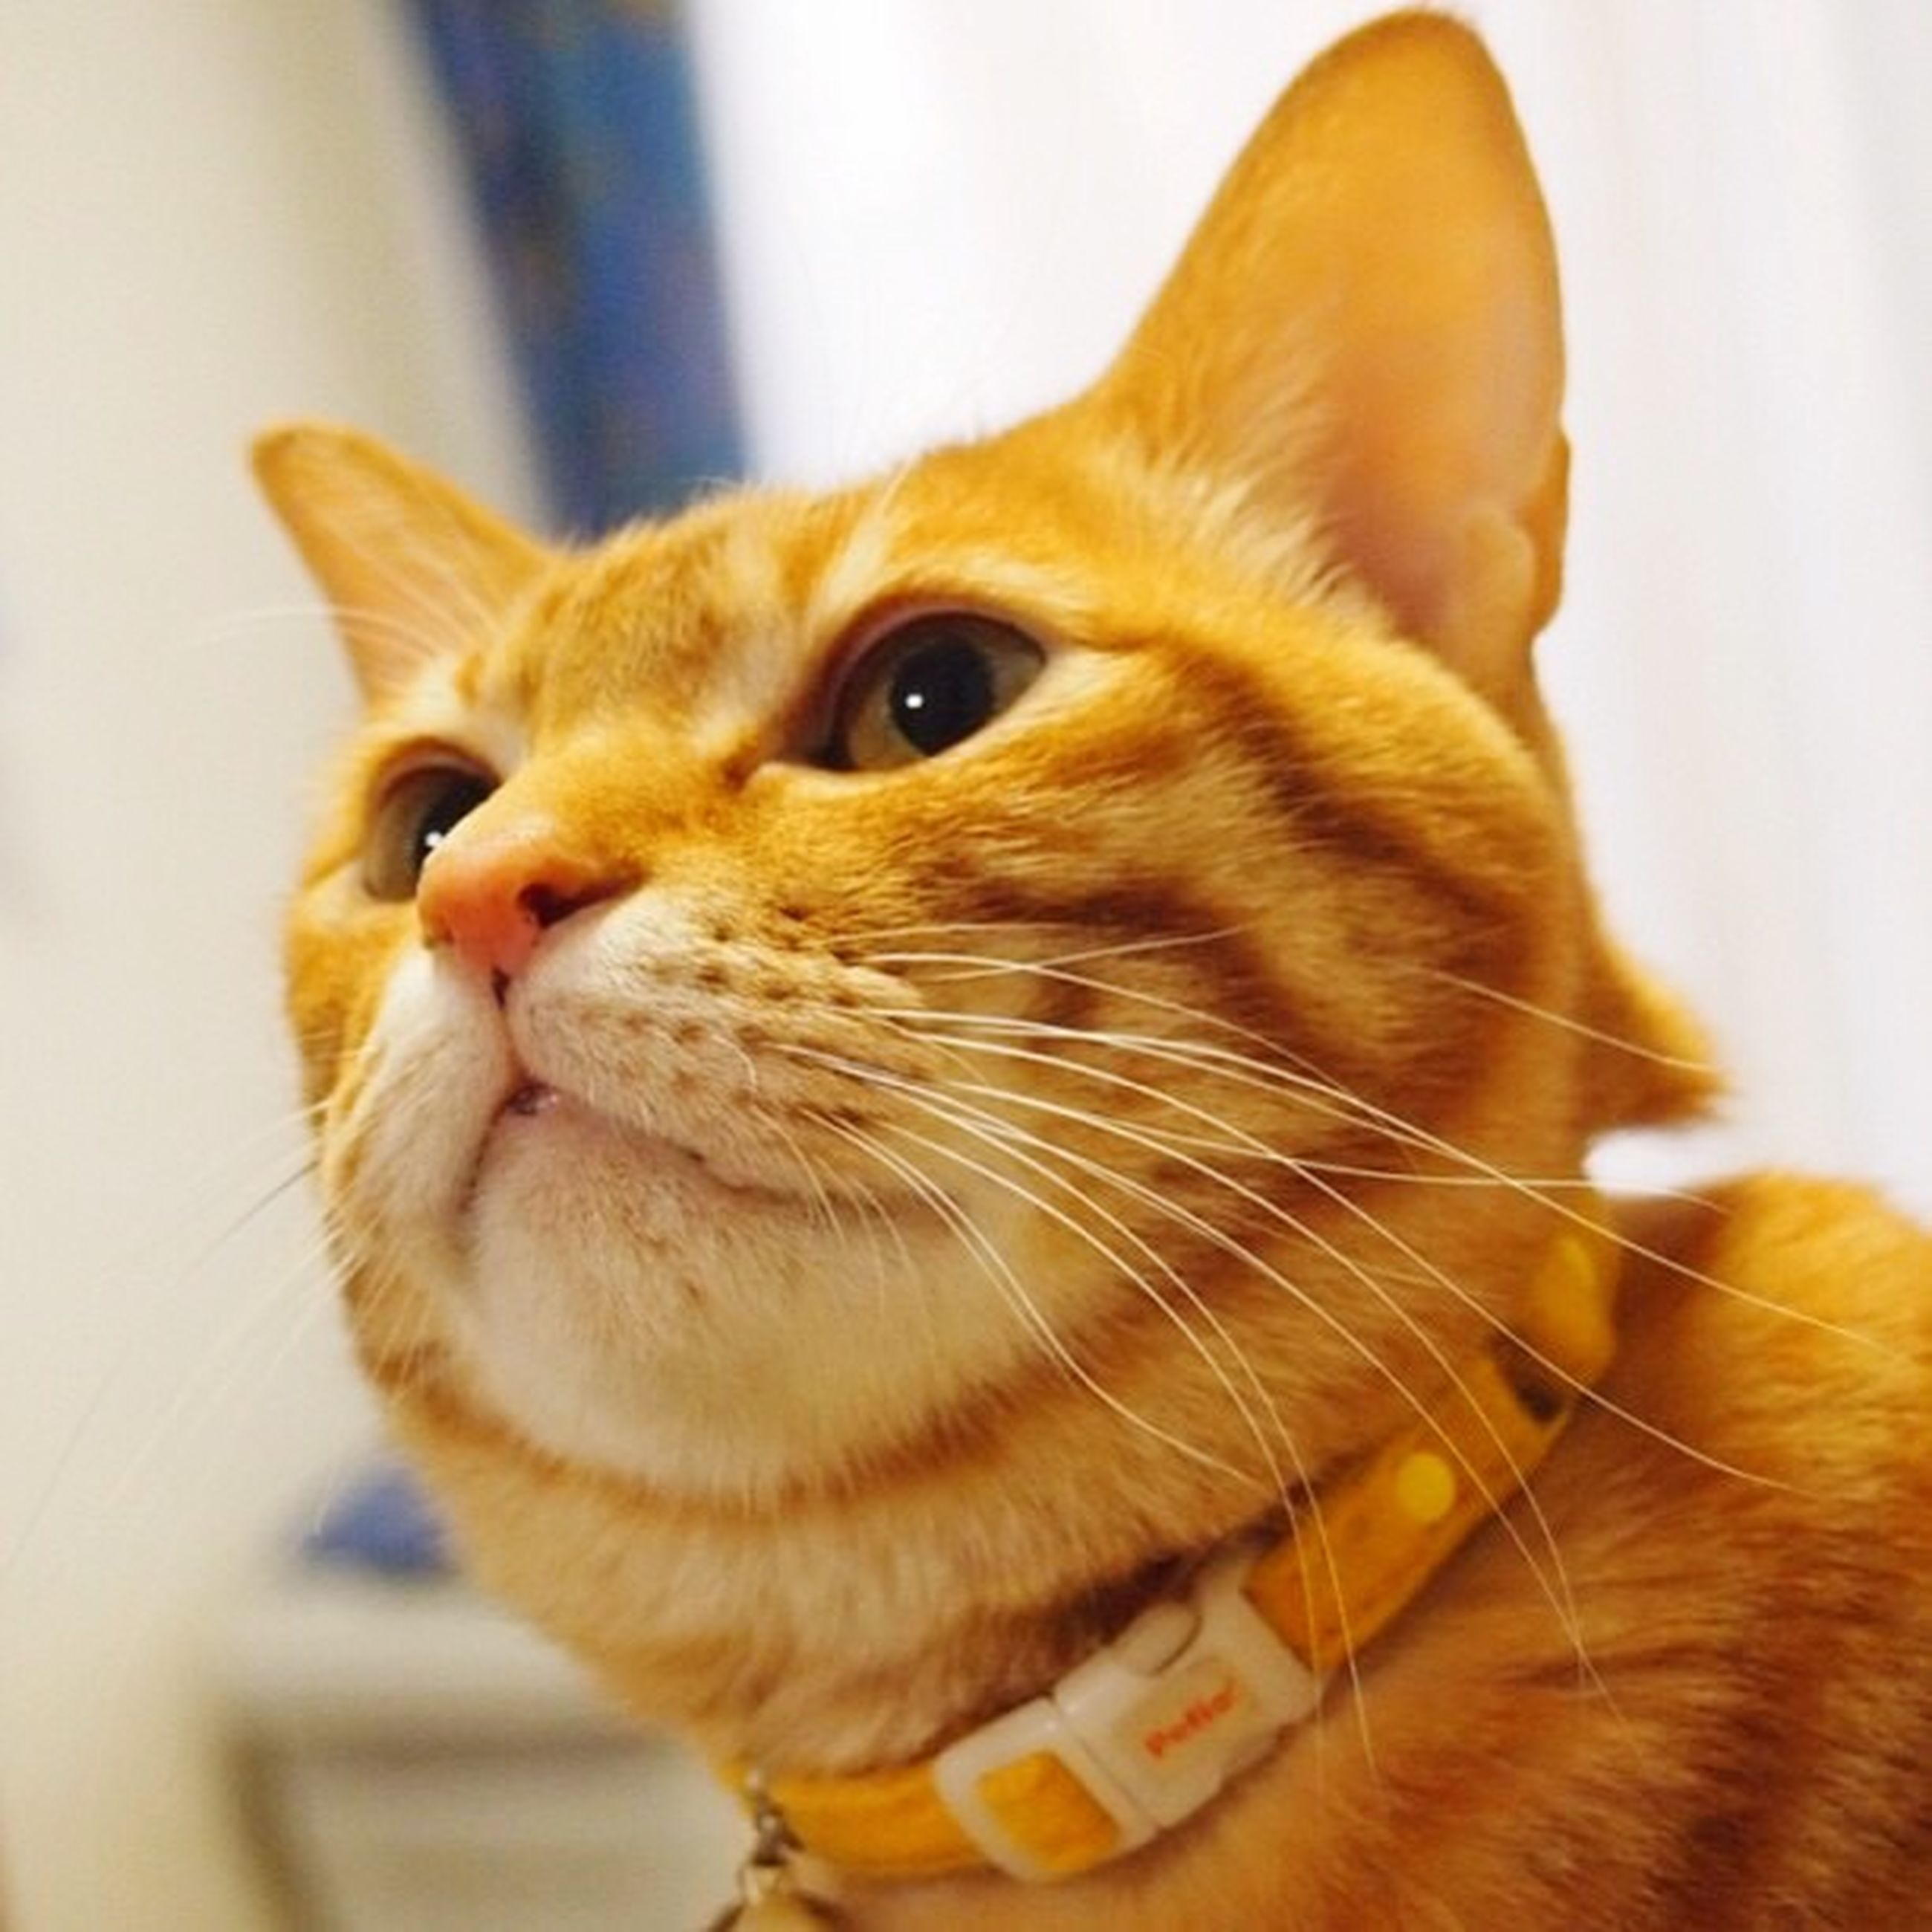 domestic cat, pets, domestic animals, one animal, feline, whisker, animal themes, mammal, indoors, close-up, no people, portrait, day, ginger cat